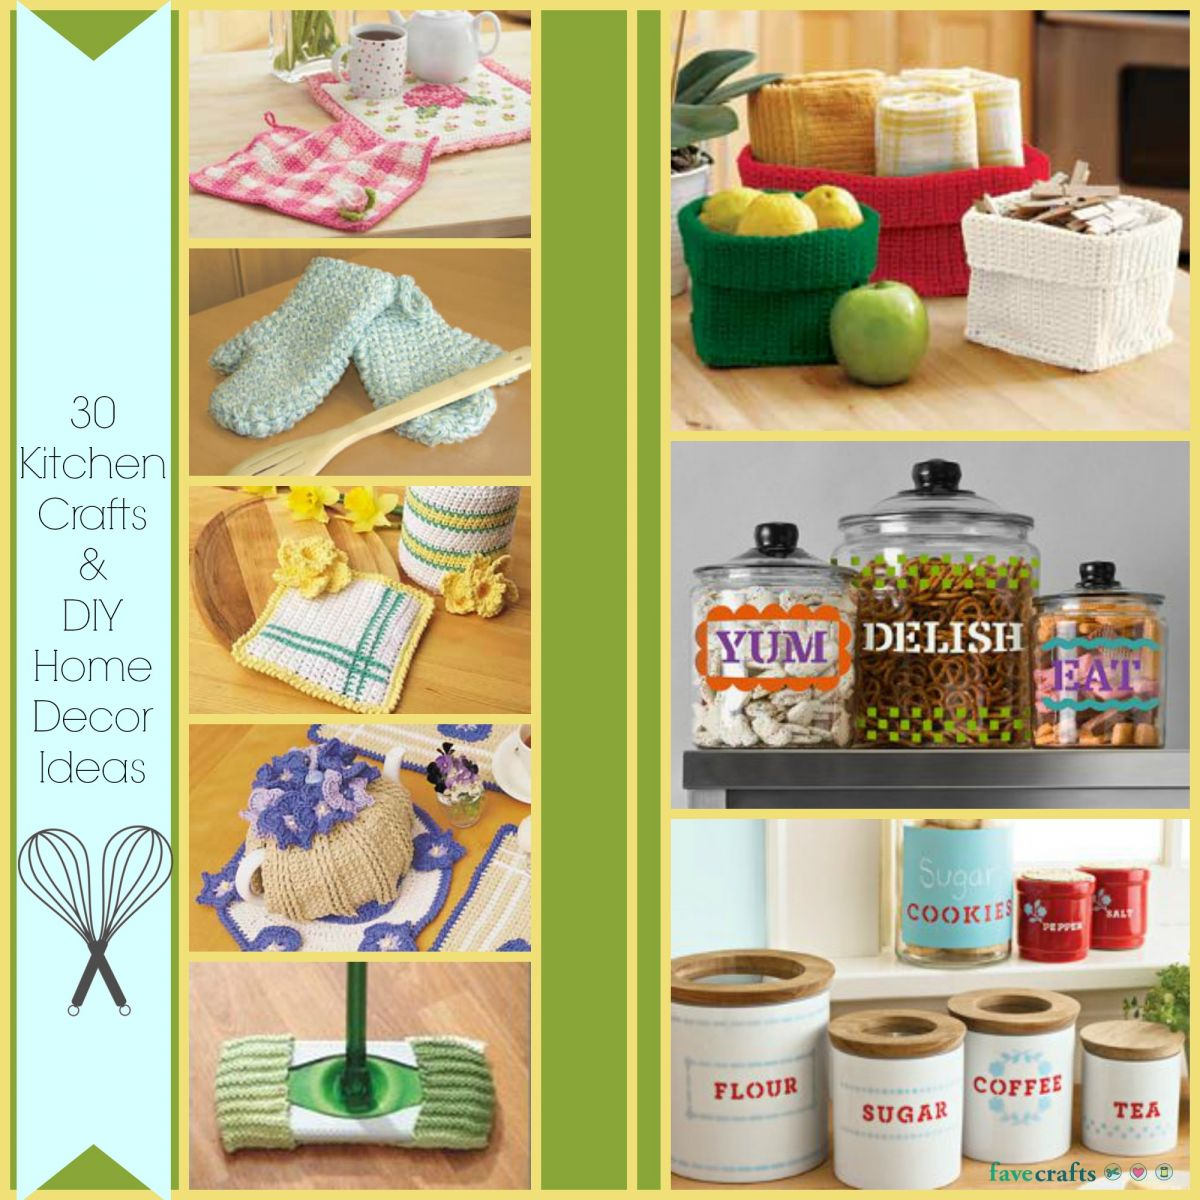 30 kitchen crafts and diy home decor ideas for Home decor ideas